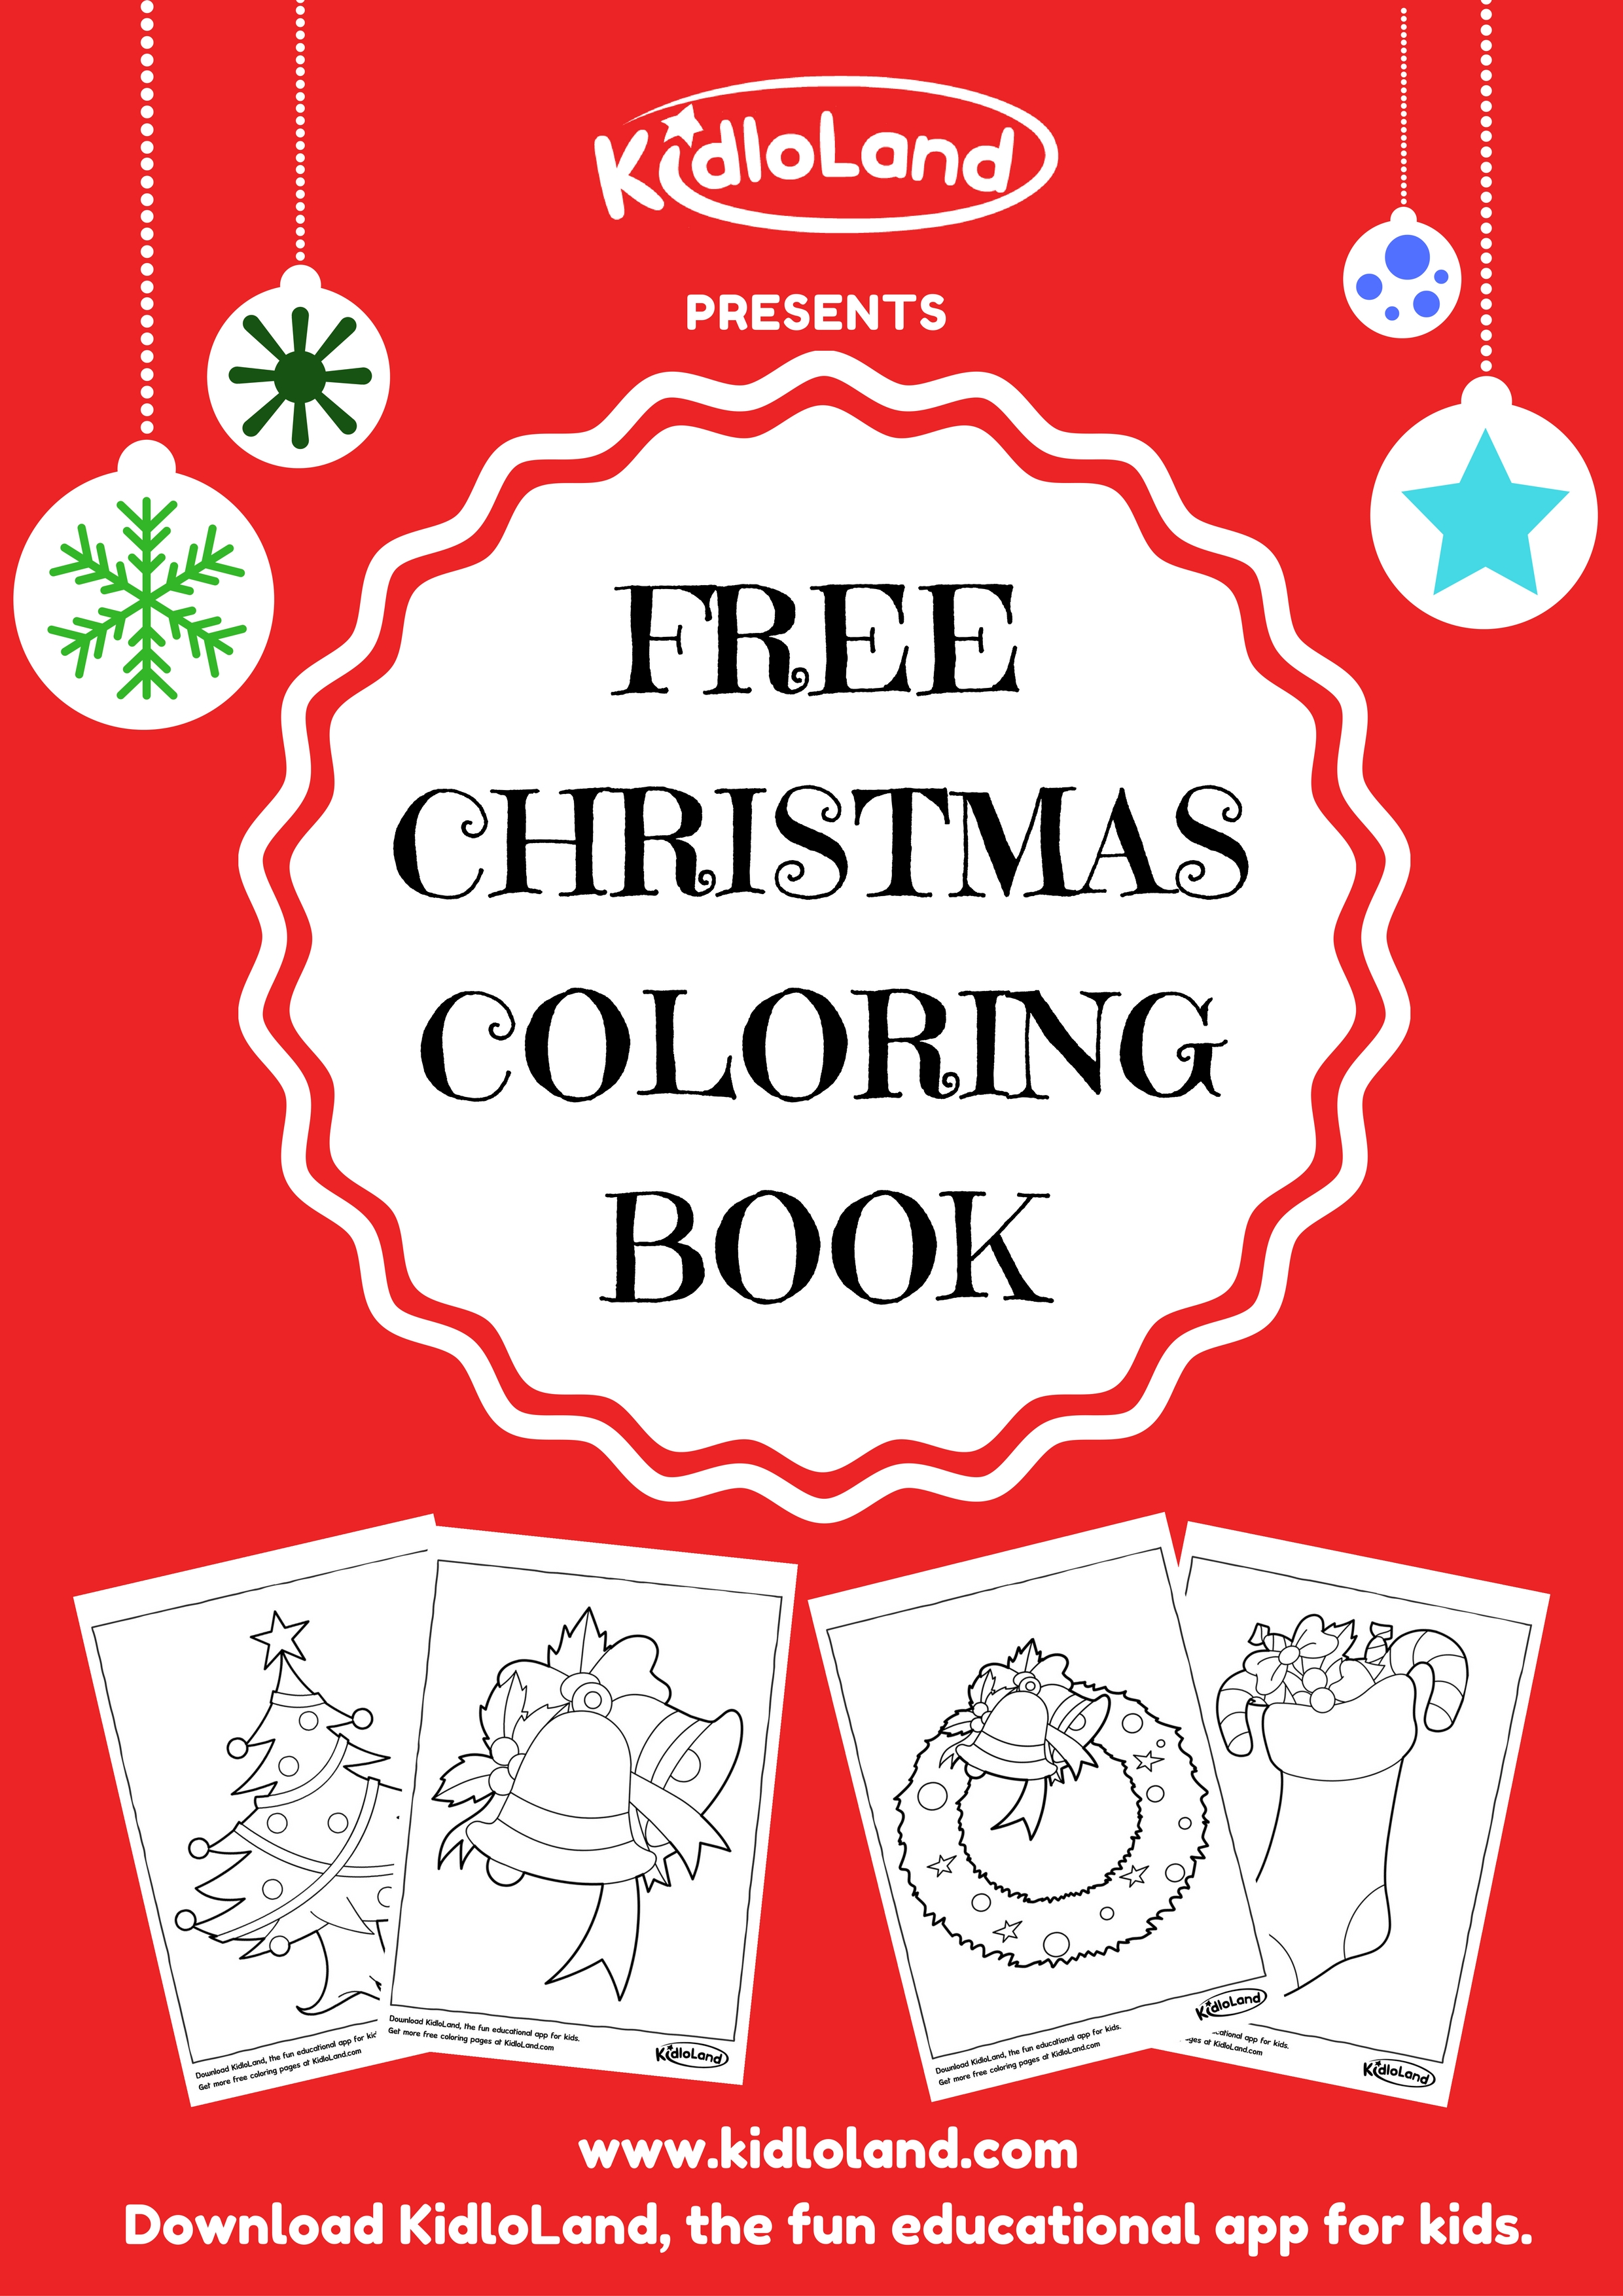 christmas-coloring-images-free-with-free-christmas-coloring-book-kidloland